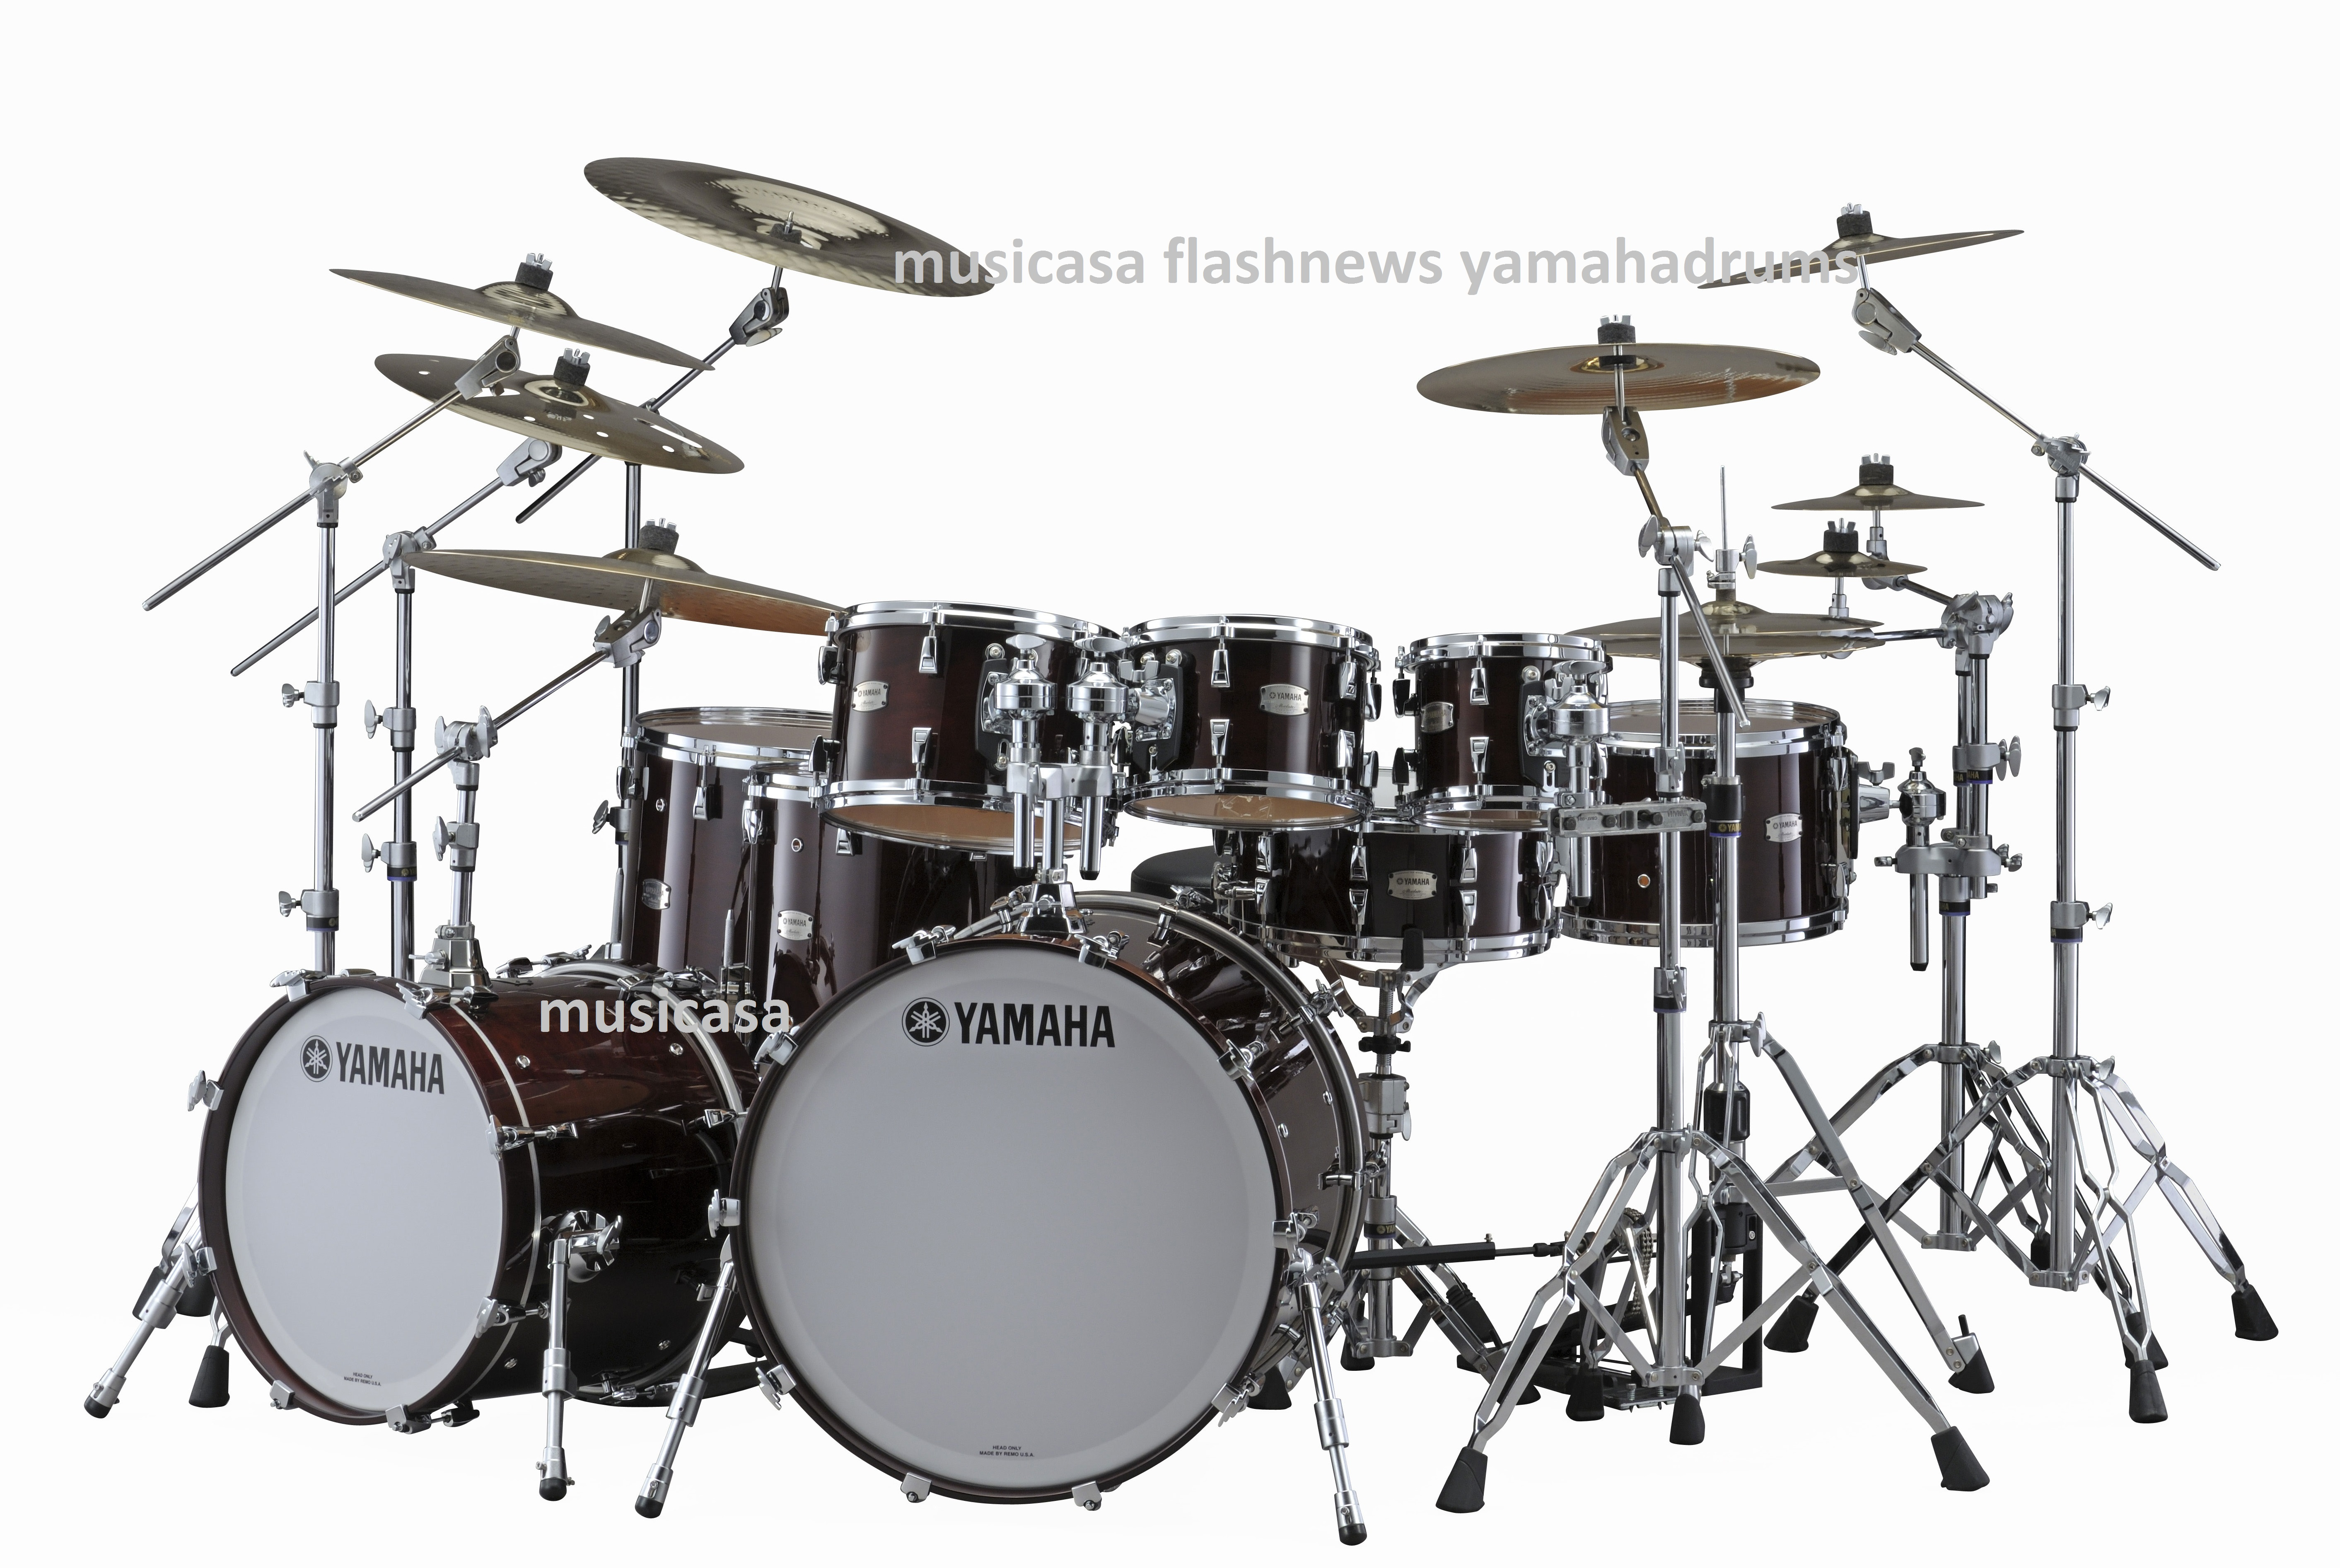 bateria yamaha recording musicasa drum clipart clker drums clip art black and white